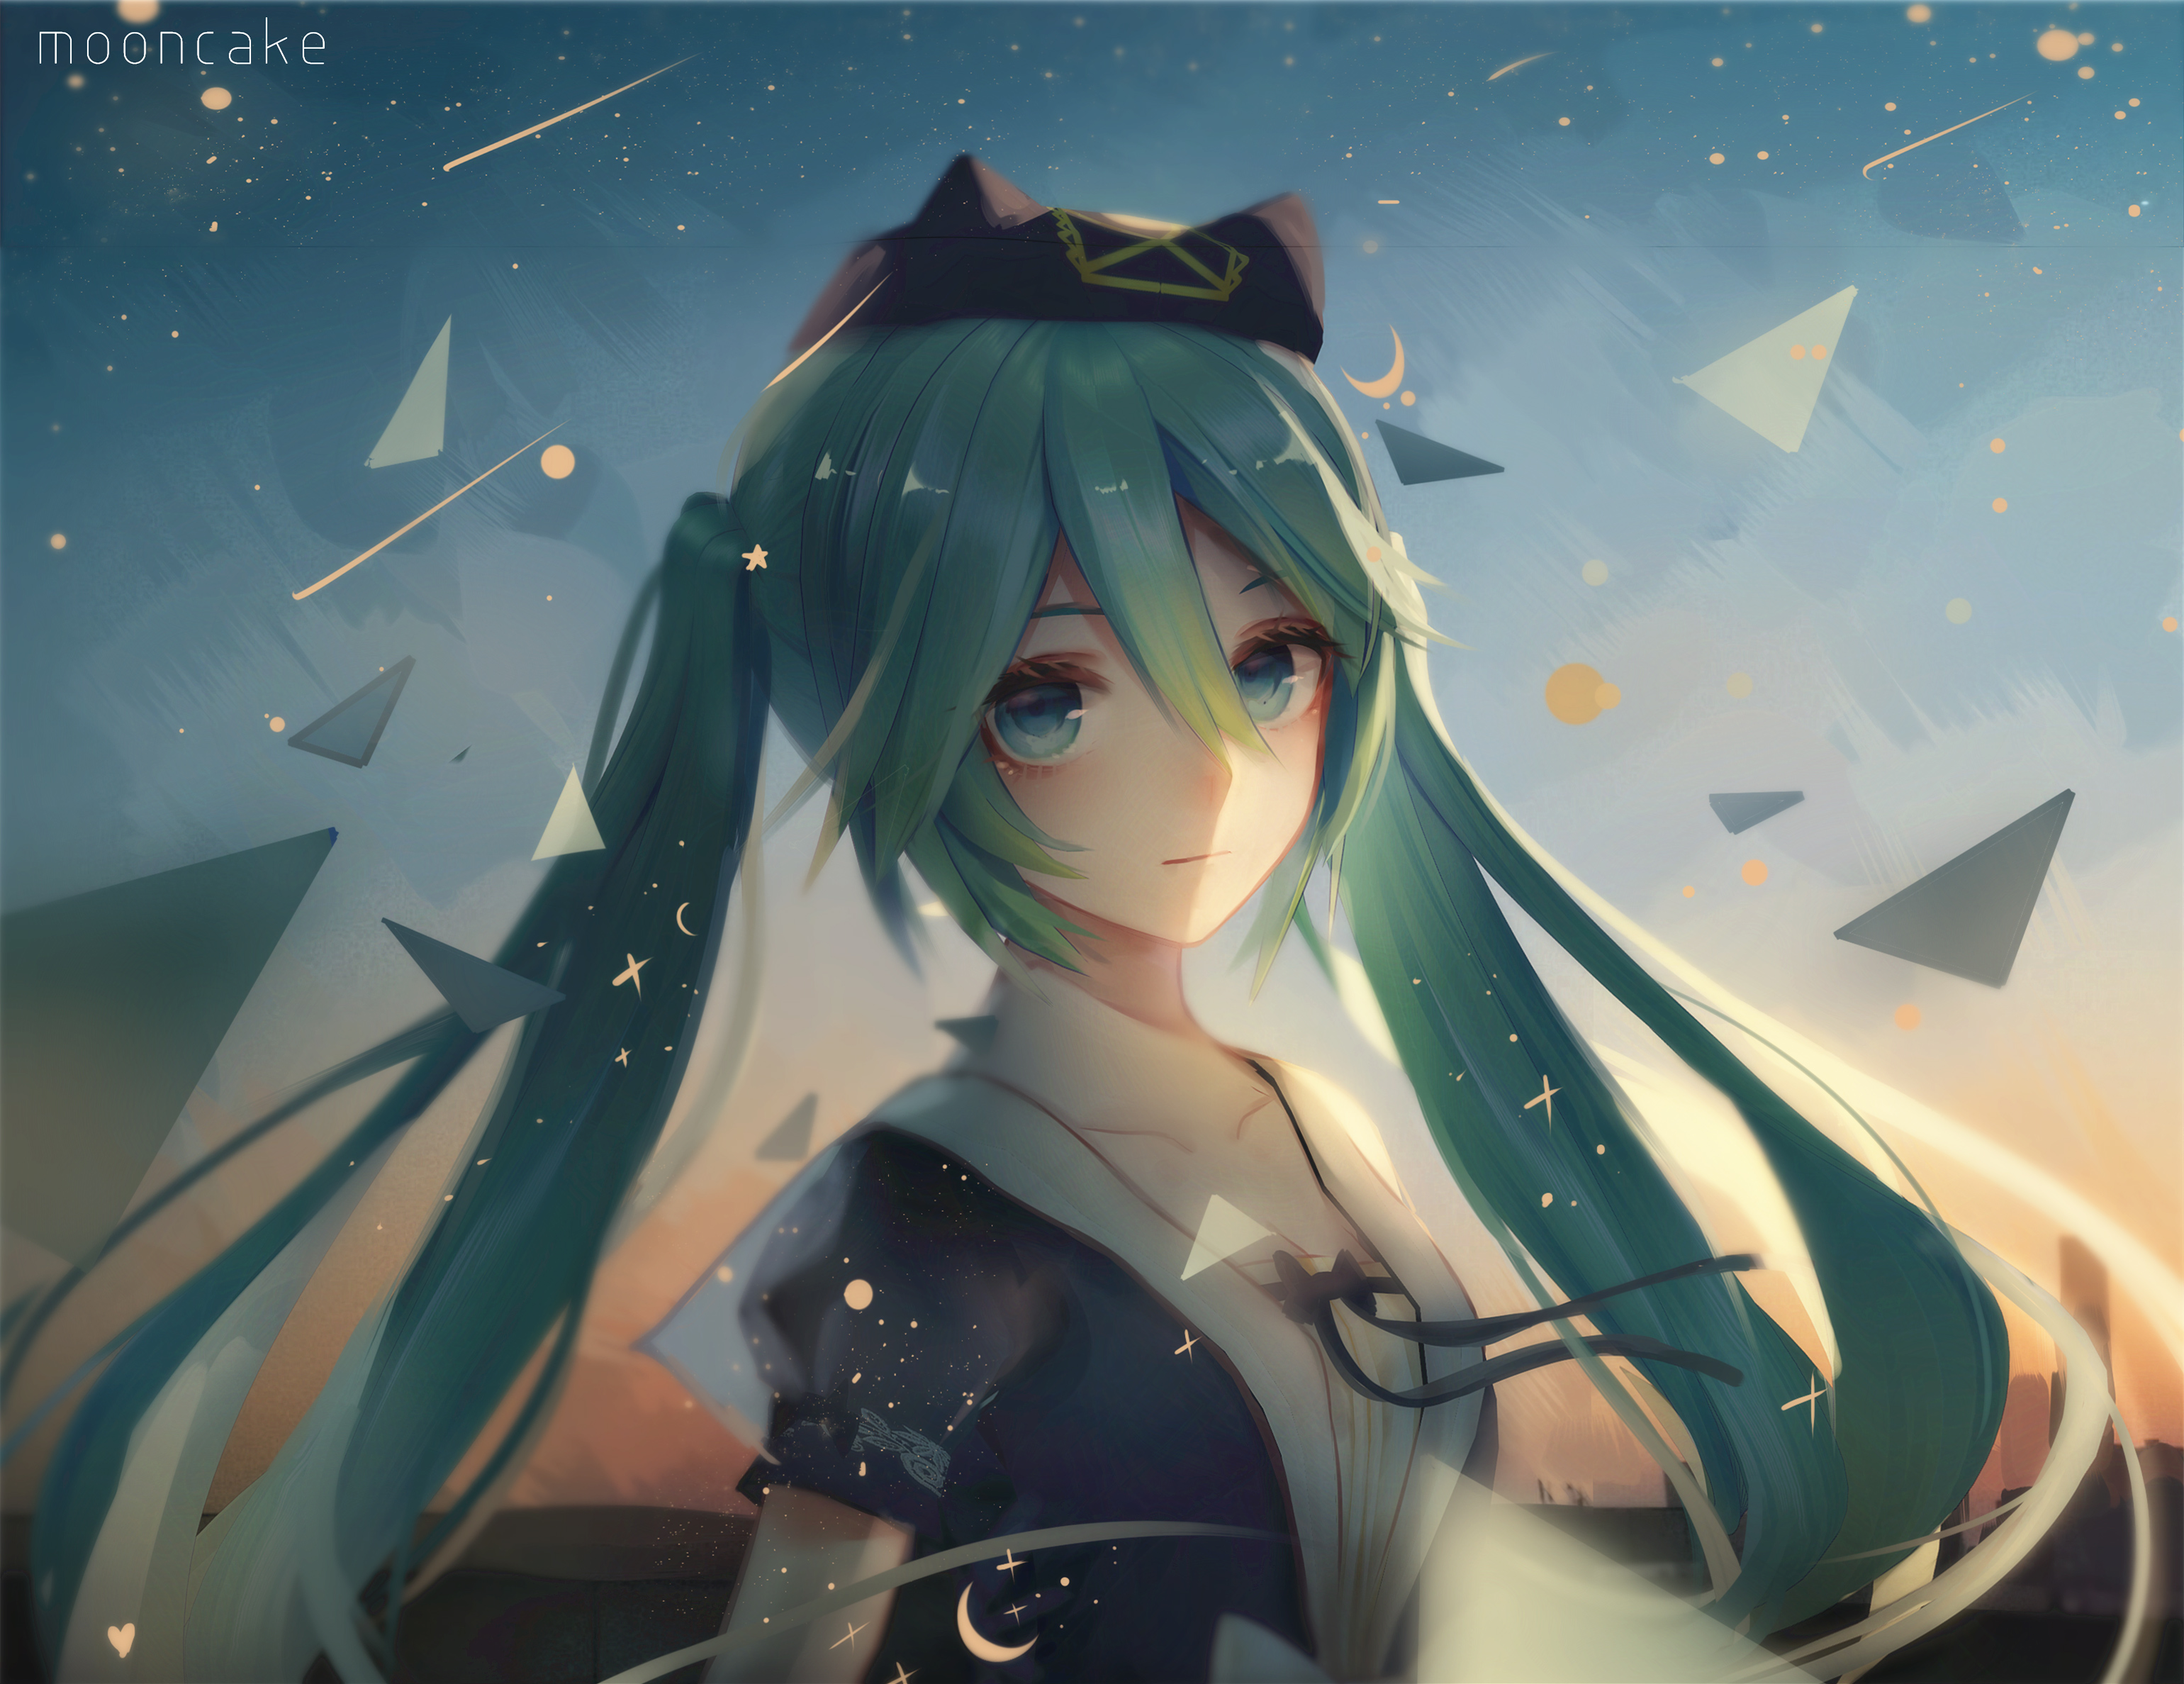 Hatsune Miku Vocaloid Anime 4k Hd Anime 4k Wallpapers Images Backgrounds Photos And Pictures